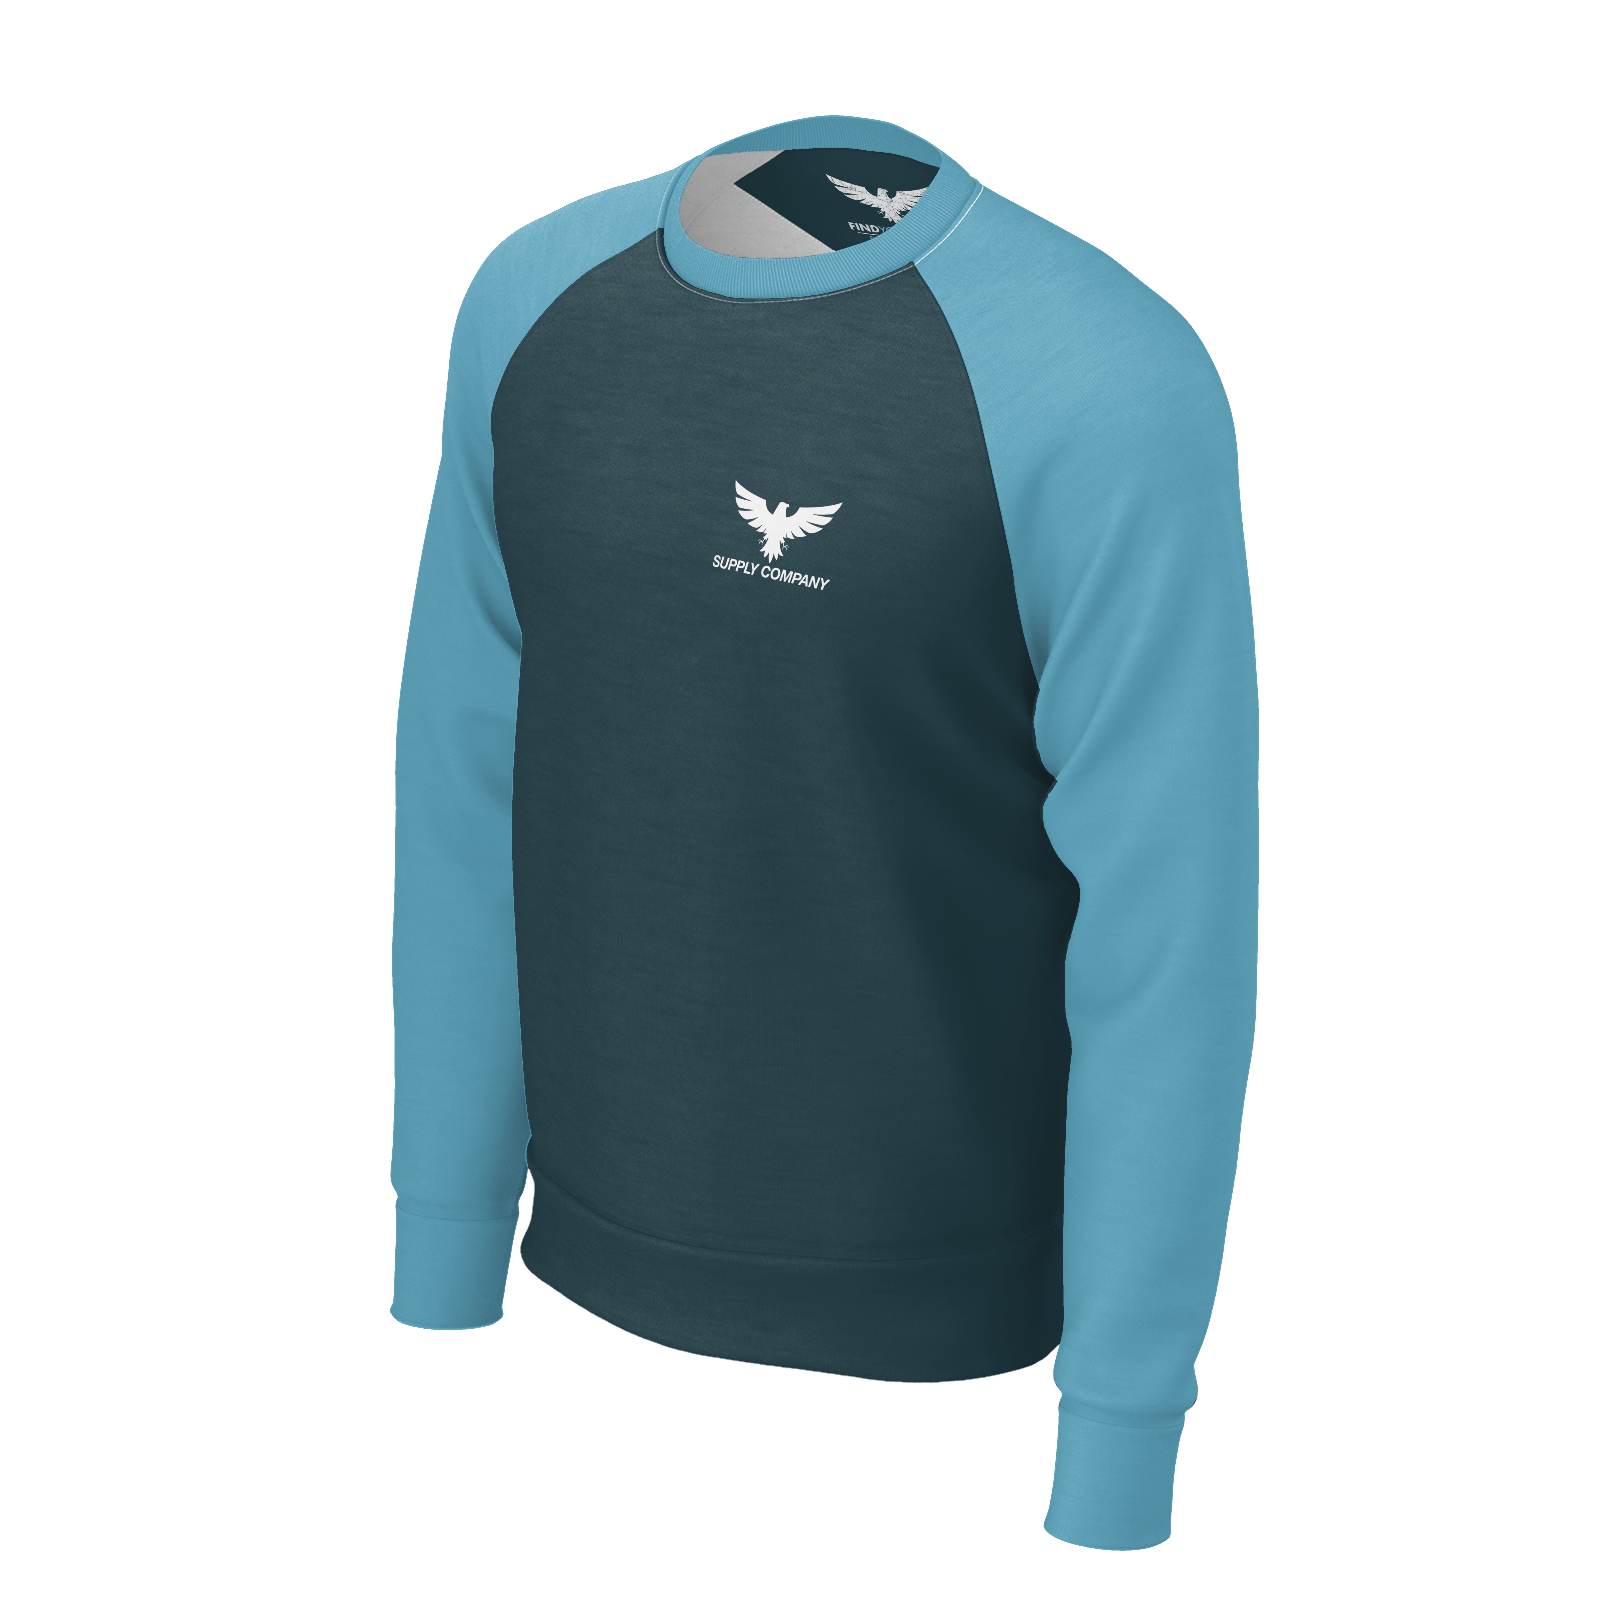 Men's Fishing Supply Co Sustainable Crewneck Raglan Long Sleeve - Find Your Coast Supply Co.